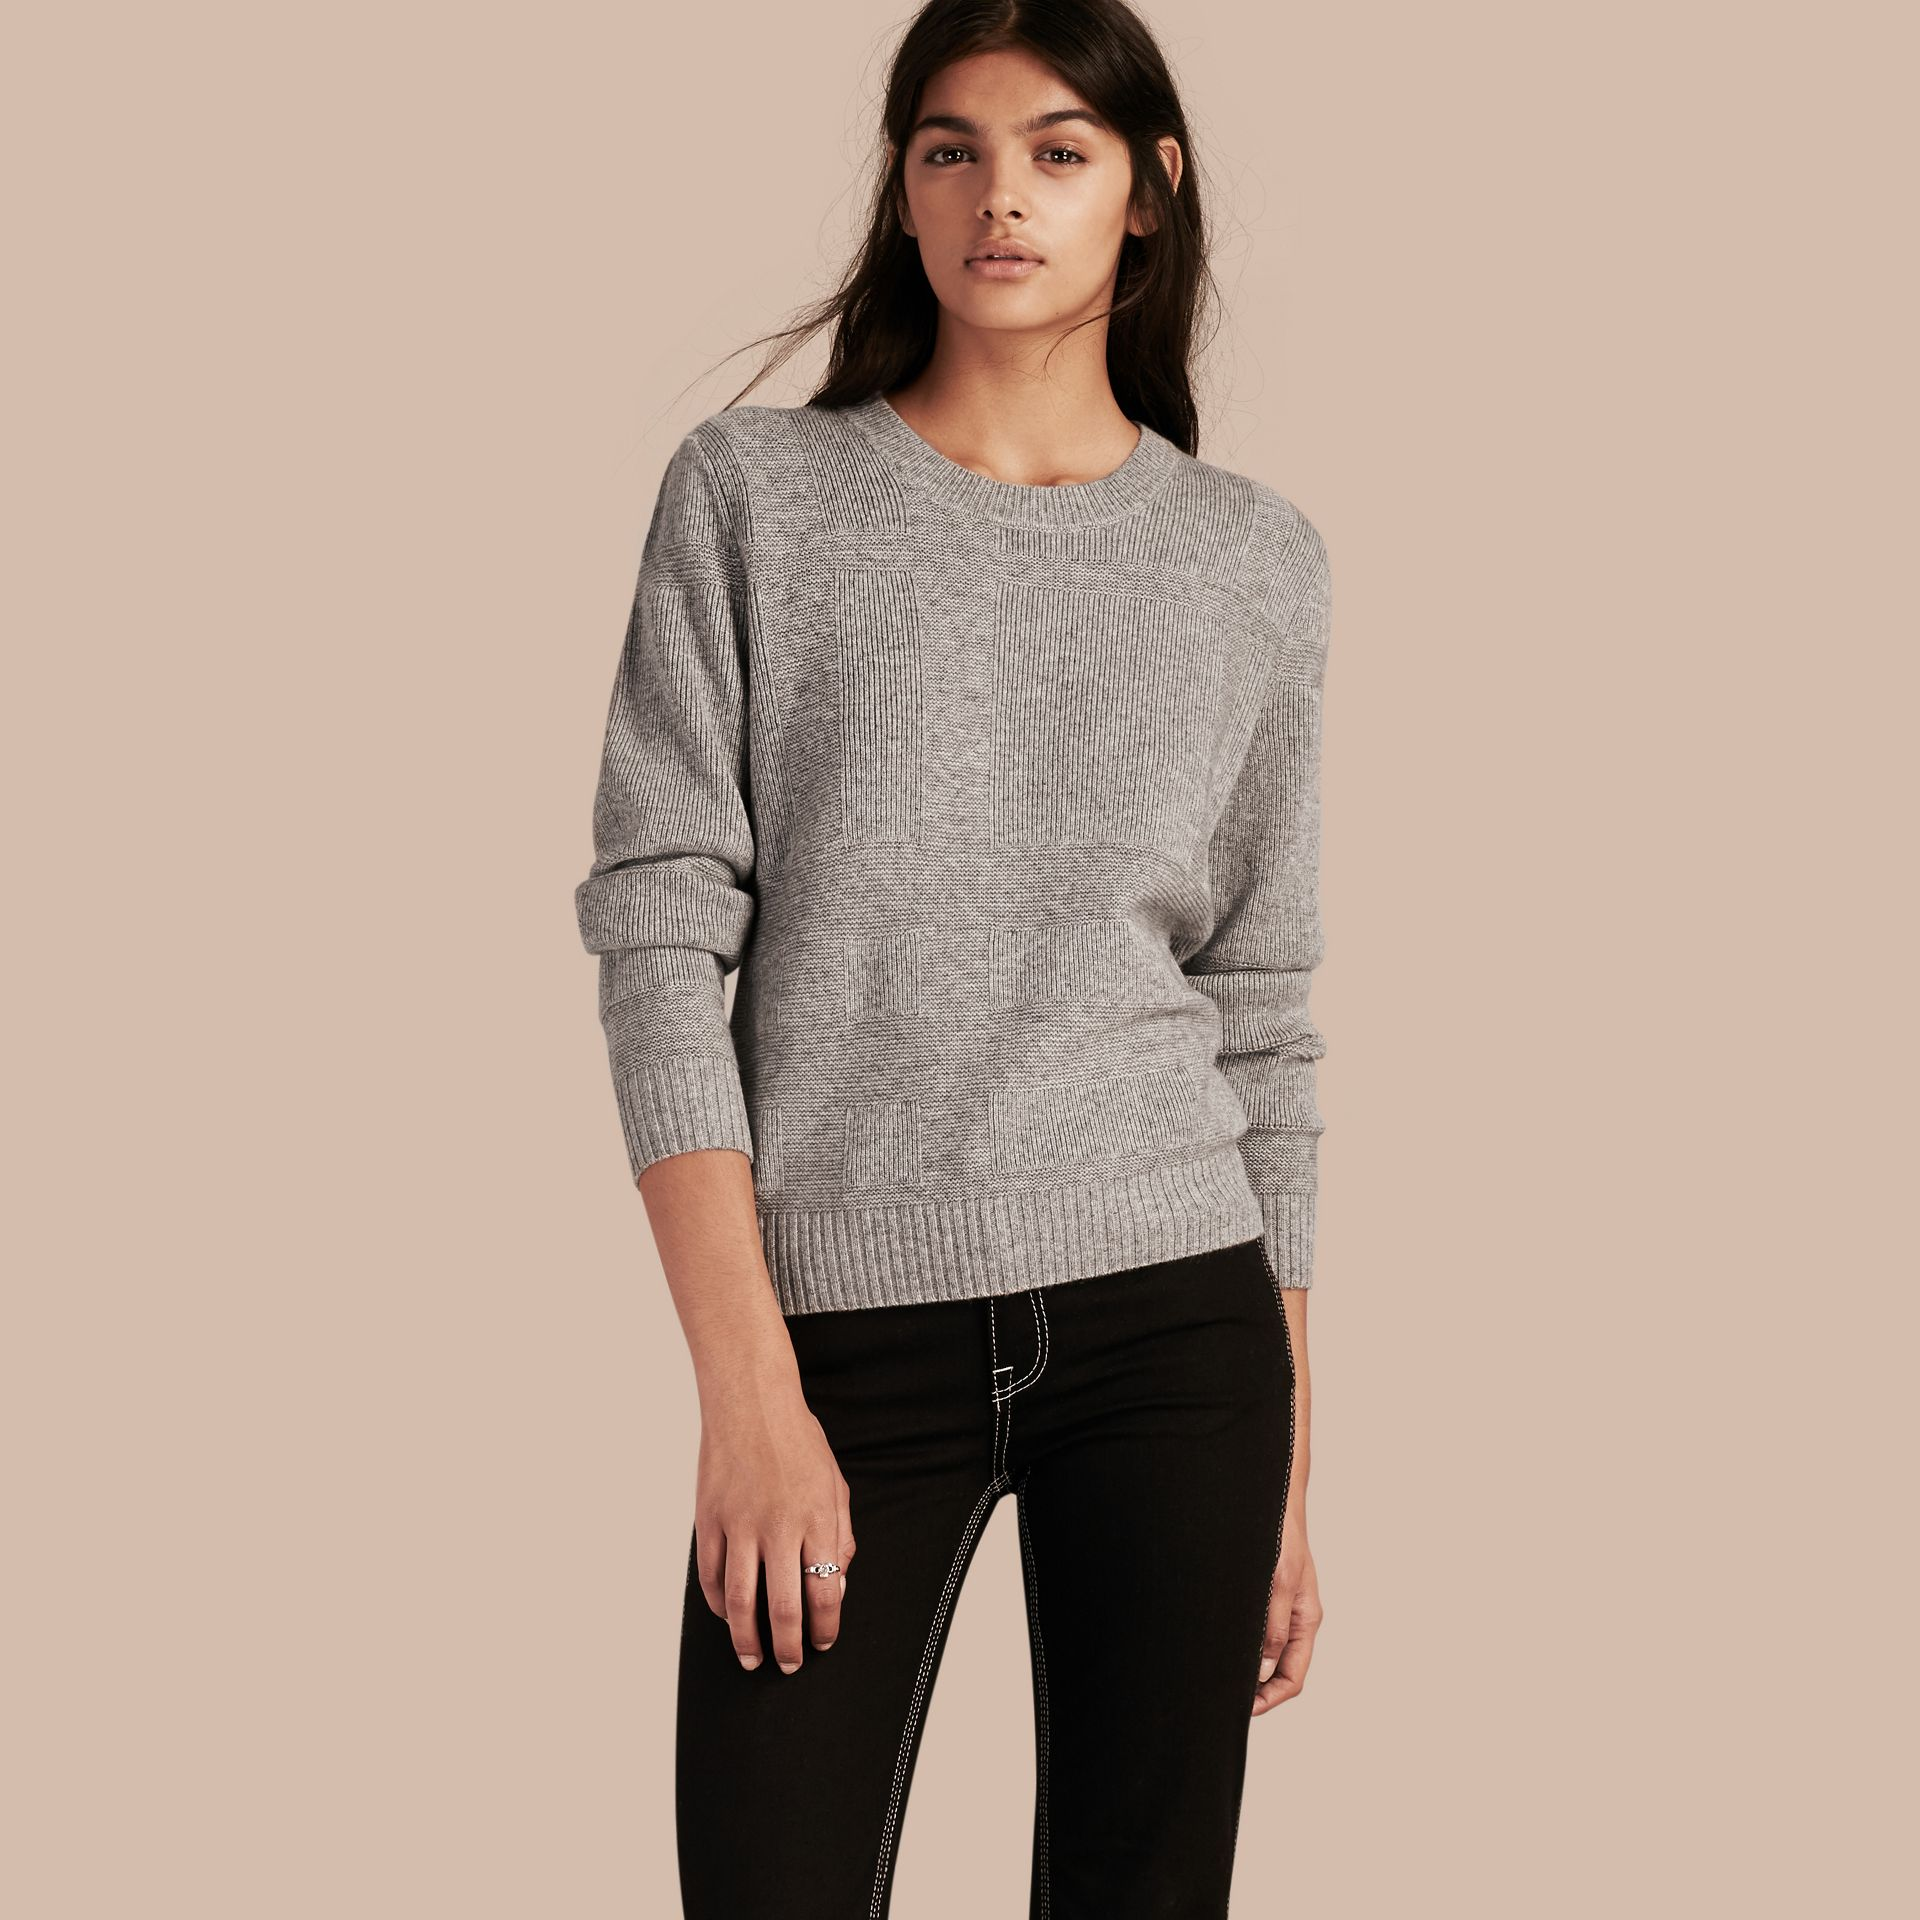 Light grey melange Check-knit Wool Cashmere Sweater Light Grey Melange - gallery image 1